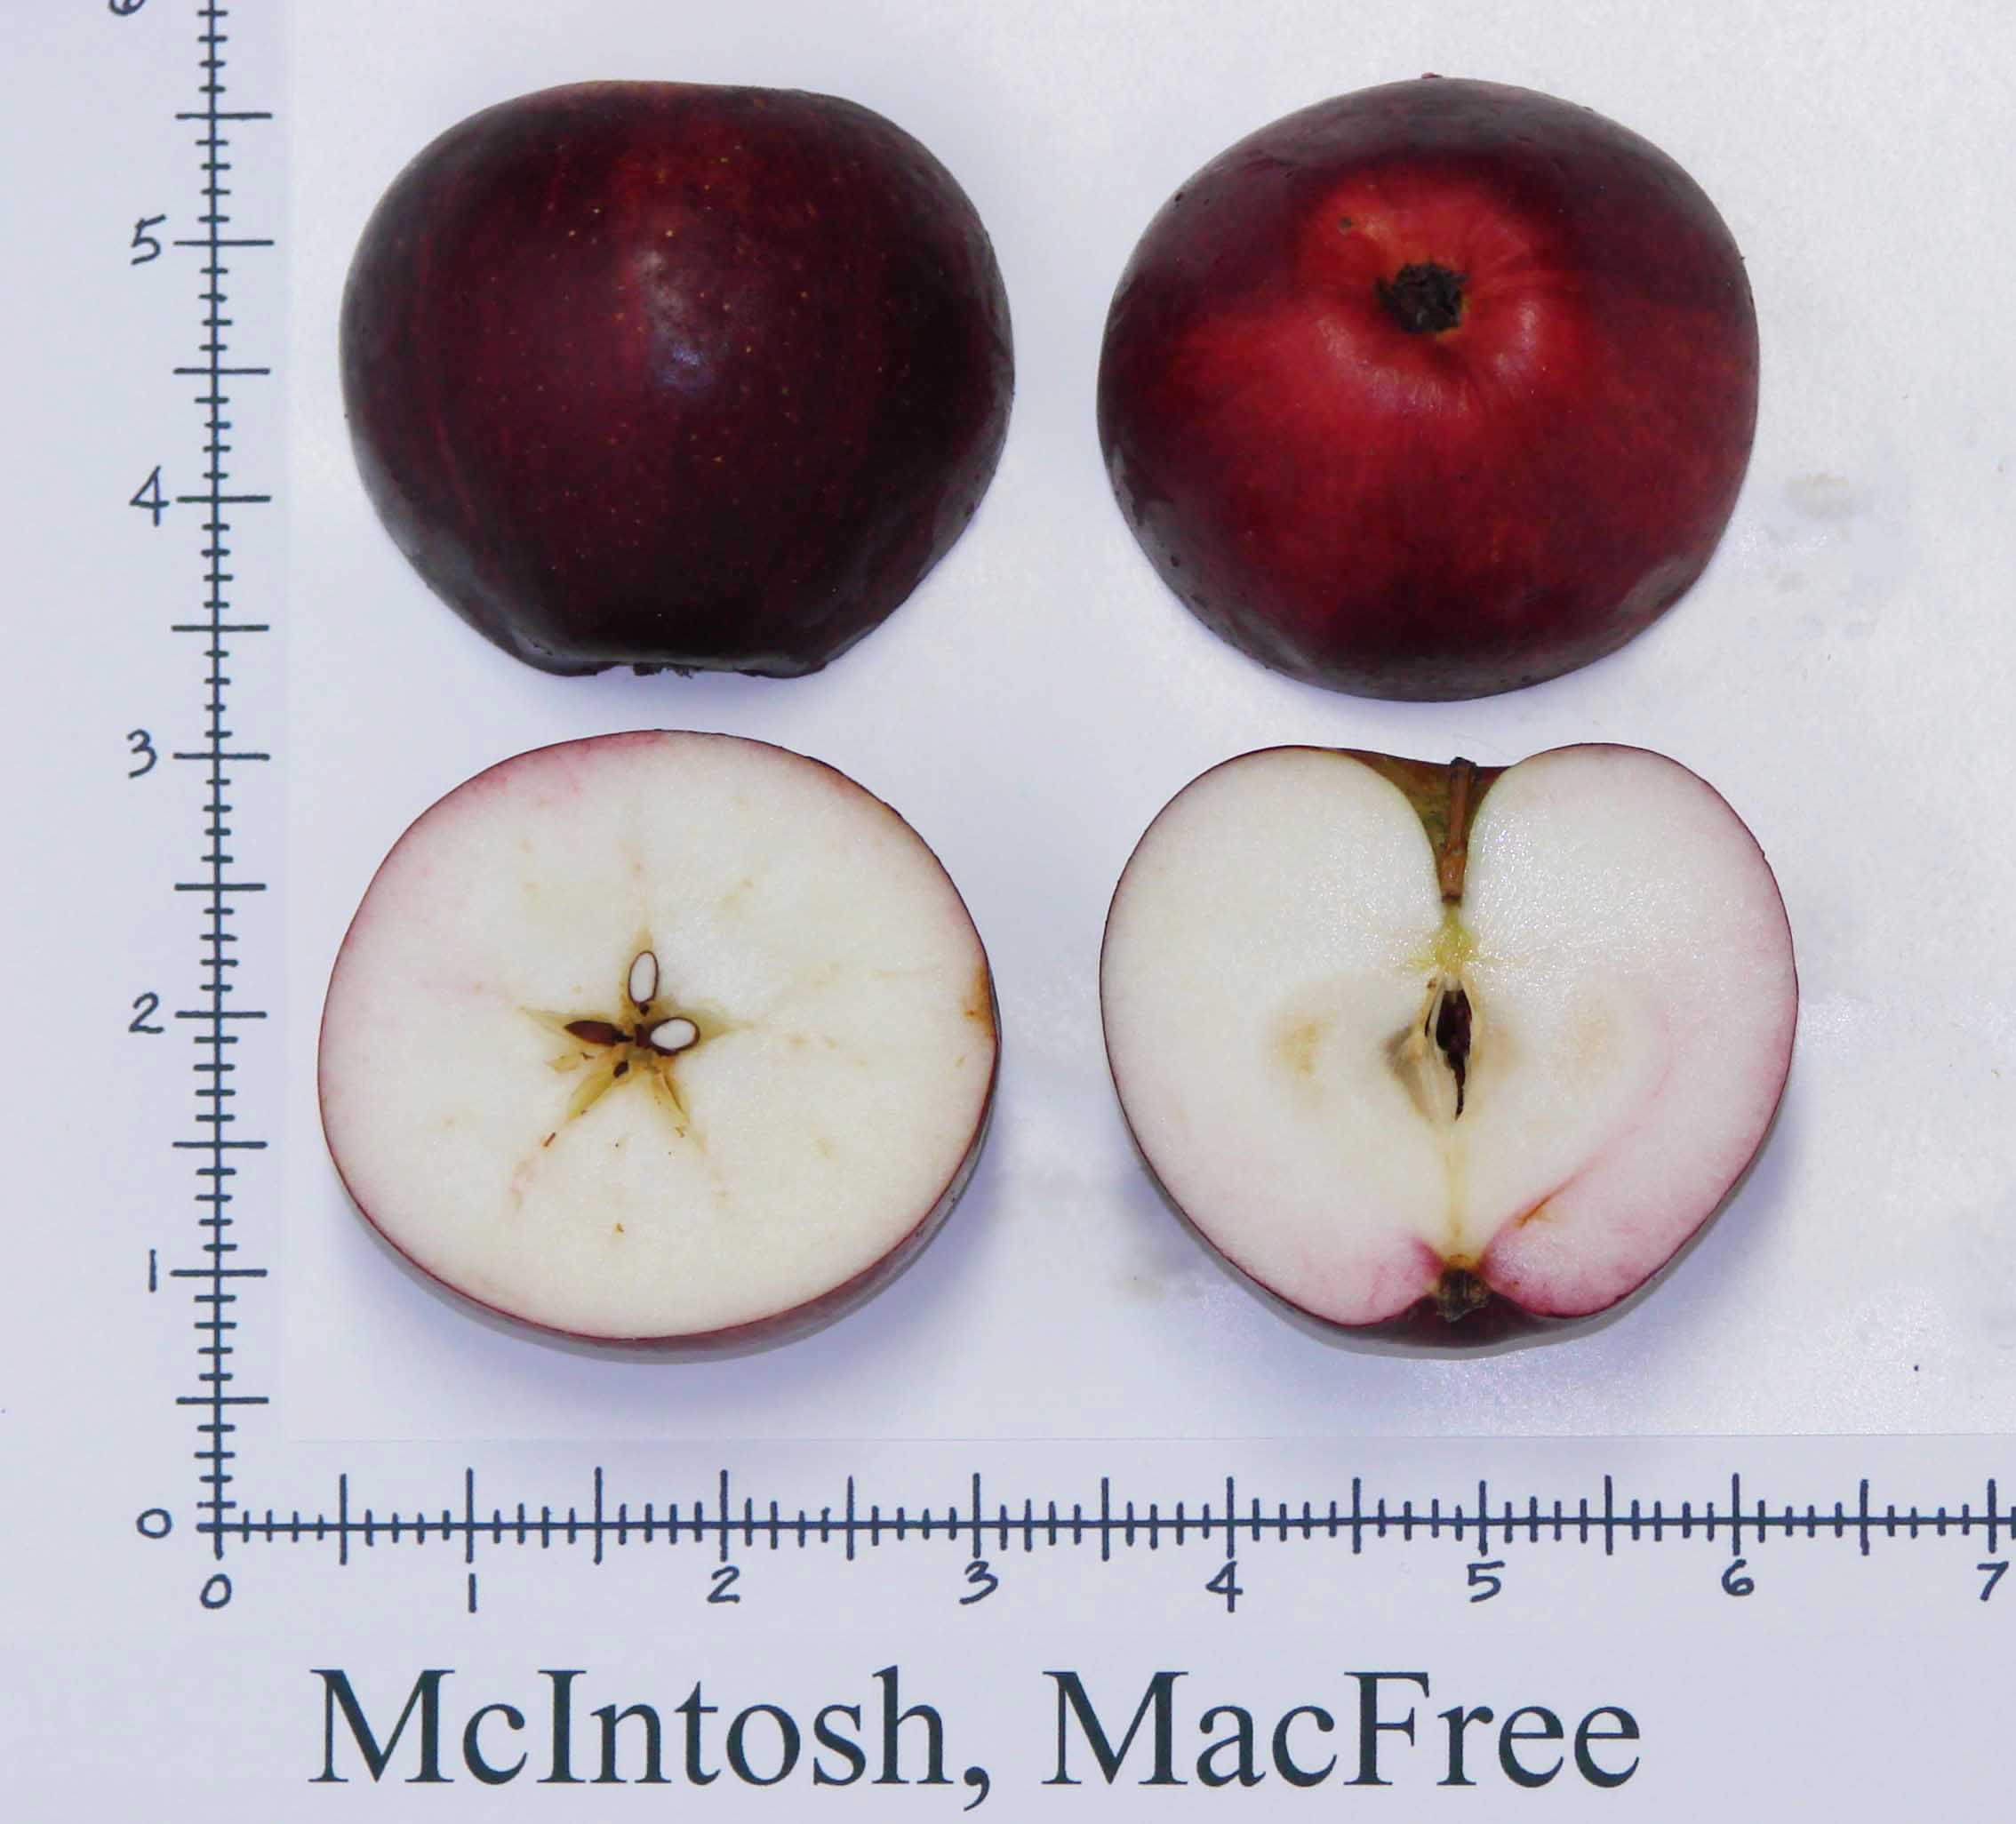 McIntosh Macfree